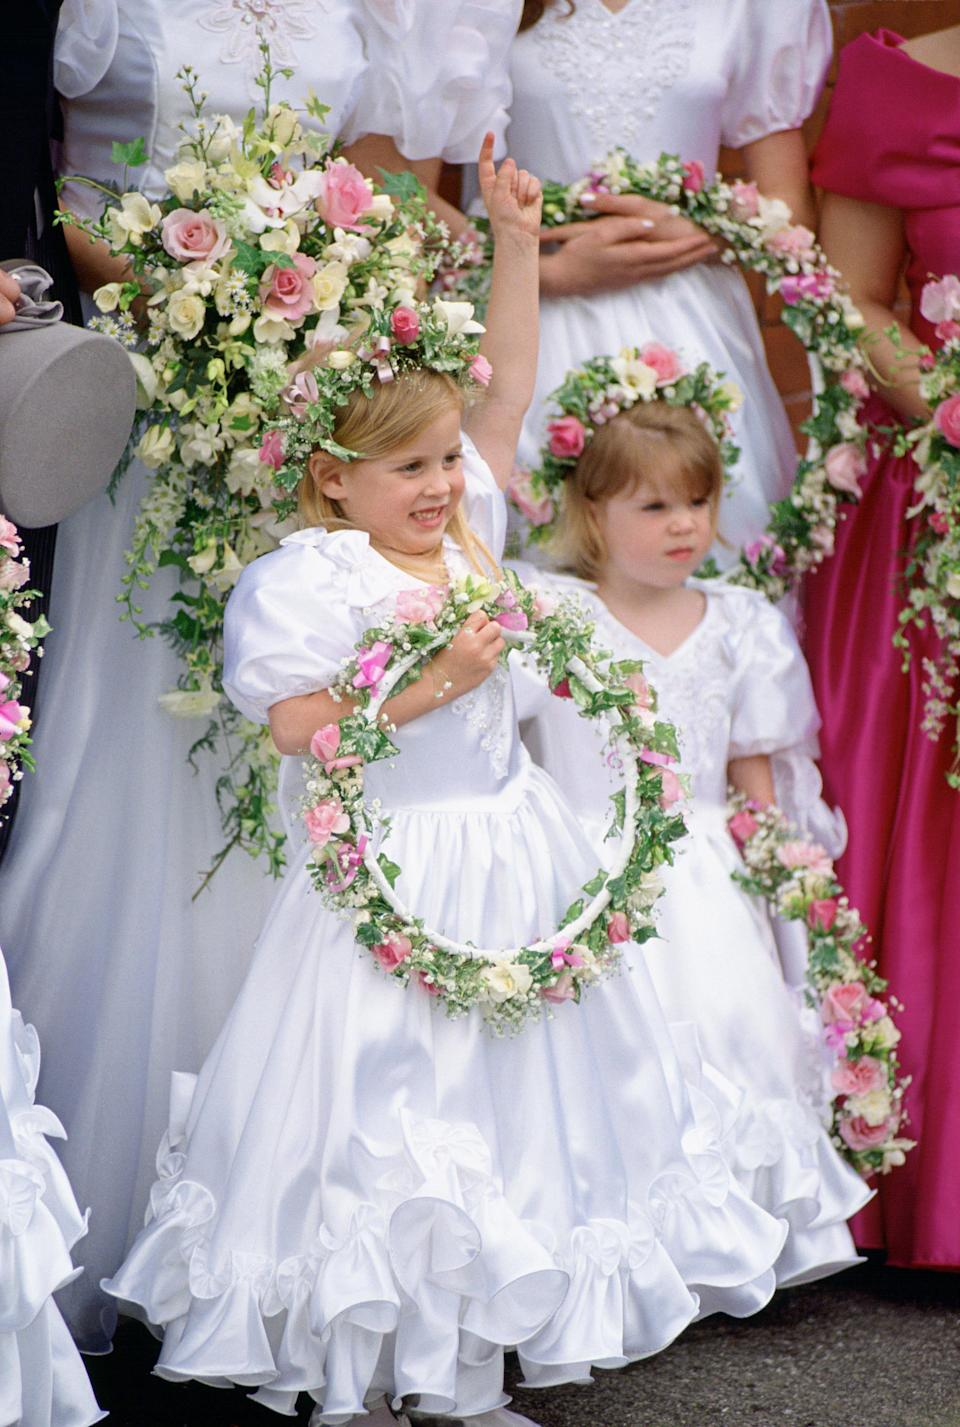 """<p>Most royal watchers saw tons of pictures and videos showcasing <a href=""""https://www.townandcountrymag.com/society/tradition/g15858426/prince-harry-pictures/"""" rel=""""nofollow noopener"""" target=""""_blank"""" data-ylk=""""slk:Prince Harry"""" class=""""link rapid-noclick-resp"""">Prince Harry </a>and <a href=""""https://www.townandcountrymag.com/society/tradition/news/g1387/vintage-photos-prince-william-prince-harry/"""" rel=""""nofollow noopener"""" target=""""_blank"""" data-ylk=""""slk:Prince William"""" class=""""link rapid-noclick-resp"""">Prince William</a> growing up. The press and fans followed their every move, and watched their respective weddings with the enthusiasm sports fans have for the Super Bowl. While <a href=""""https://www.townandcountrymag.com/style/fashion-trends/g20746481/princess-beatrice-fashion/"""" rel=""""nofollow noopener"""" target=""""_blank"""" data-ylk=""""slk:Princess Beatrice"""" class=""""link rapid-noclick-resp"""">Princess Beatrice</a> and <a href=""""https://www.townandcountrymag.com/style/fashion-trends/g21086086/princess-eugenie-fashion/"""" rel=""""nofollow noopener"""" target=""""_blank"""" data-ylk=""""slk:Princess Eugenie"""" class=""""link rapid-noclick-resp"""">Princess Eugenie</a>, the daughters of the Duke and Duchess of York, got royal attention as well as the granddaughters of Queen Elizabeth, most Americans didn't watch every one of their youthful movements as closely as they did the offspring of Prince Charles and Princess Diana. And even though the princesses are ninth and tenth in line for the British throne, their weddings were certainly met with a lot less media fanfare, especially here across the pond. </p><p>Many Gen Xers might remember <a href=""""https://www.townandcountrymag.com/society/tradition/a37105968/sarah-ferguson-duchess-of-york-her-heart-for-a-compass-novel-interview-2021/"""" rel=""""nofollow noopener"""" target=""""_blank"""" data-ylk=""""slk:the drama that surrounded their mother, Sarah Ferguson"""" class=""""link rapid-noclick-resp"""">the drama that surrounded their mother, Sarah Ferguson</a> (a.k.a. Fergie), during her divorce """